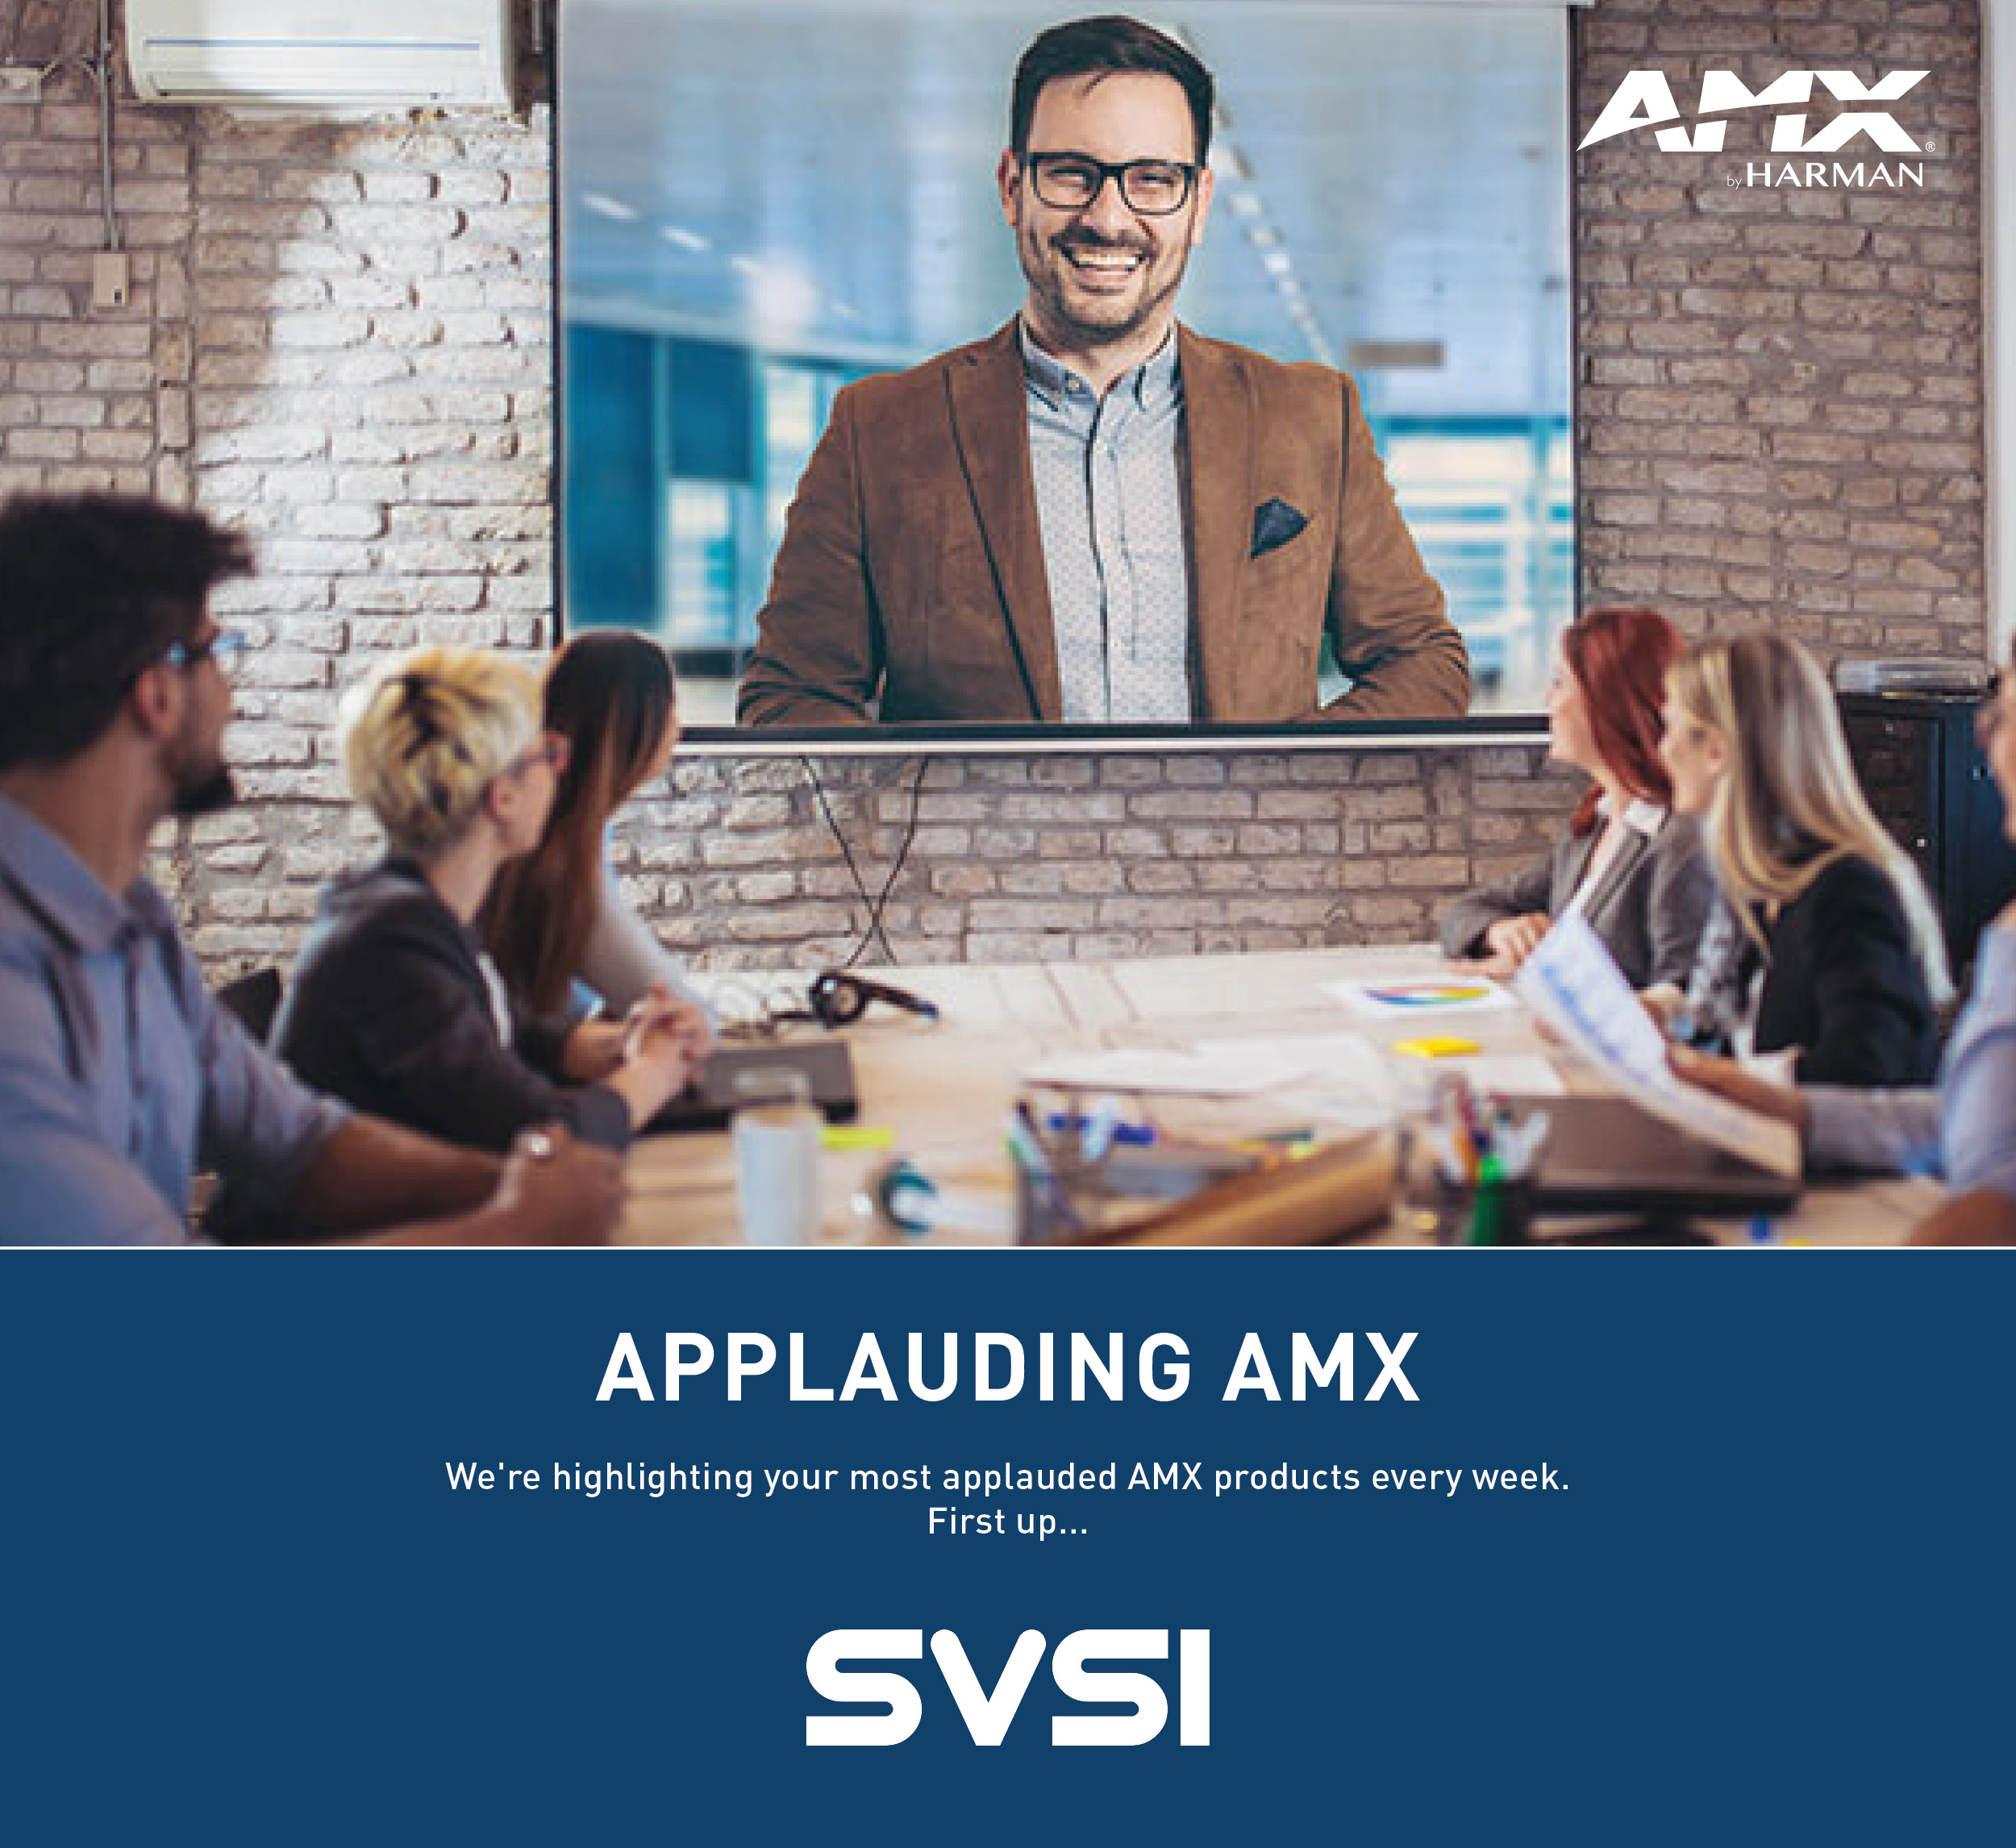 We're highlighting your most applauded AMX products every week. First up, SVSI😍